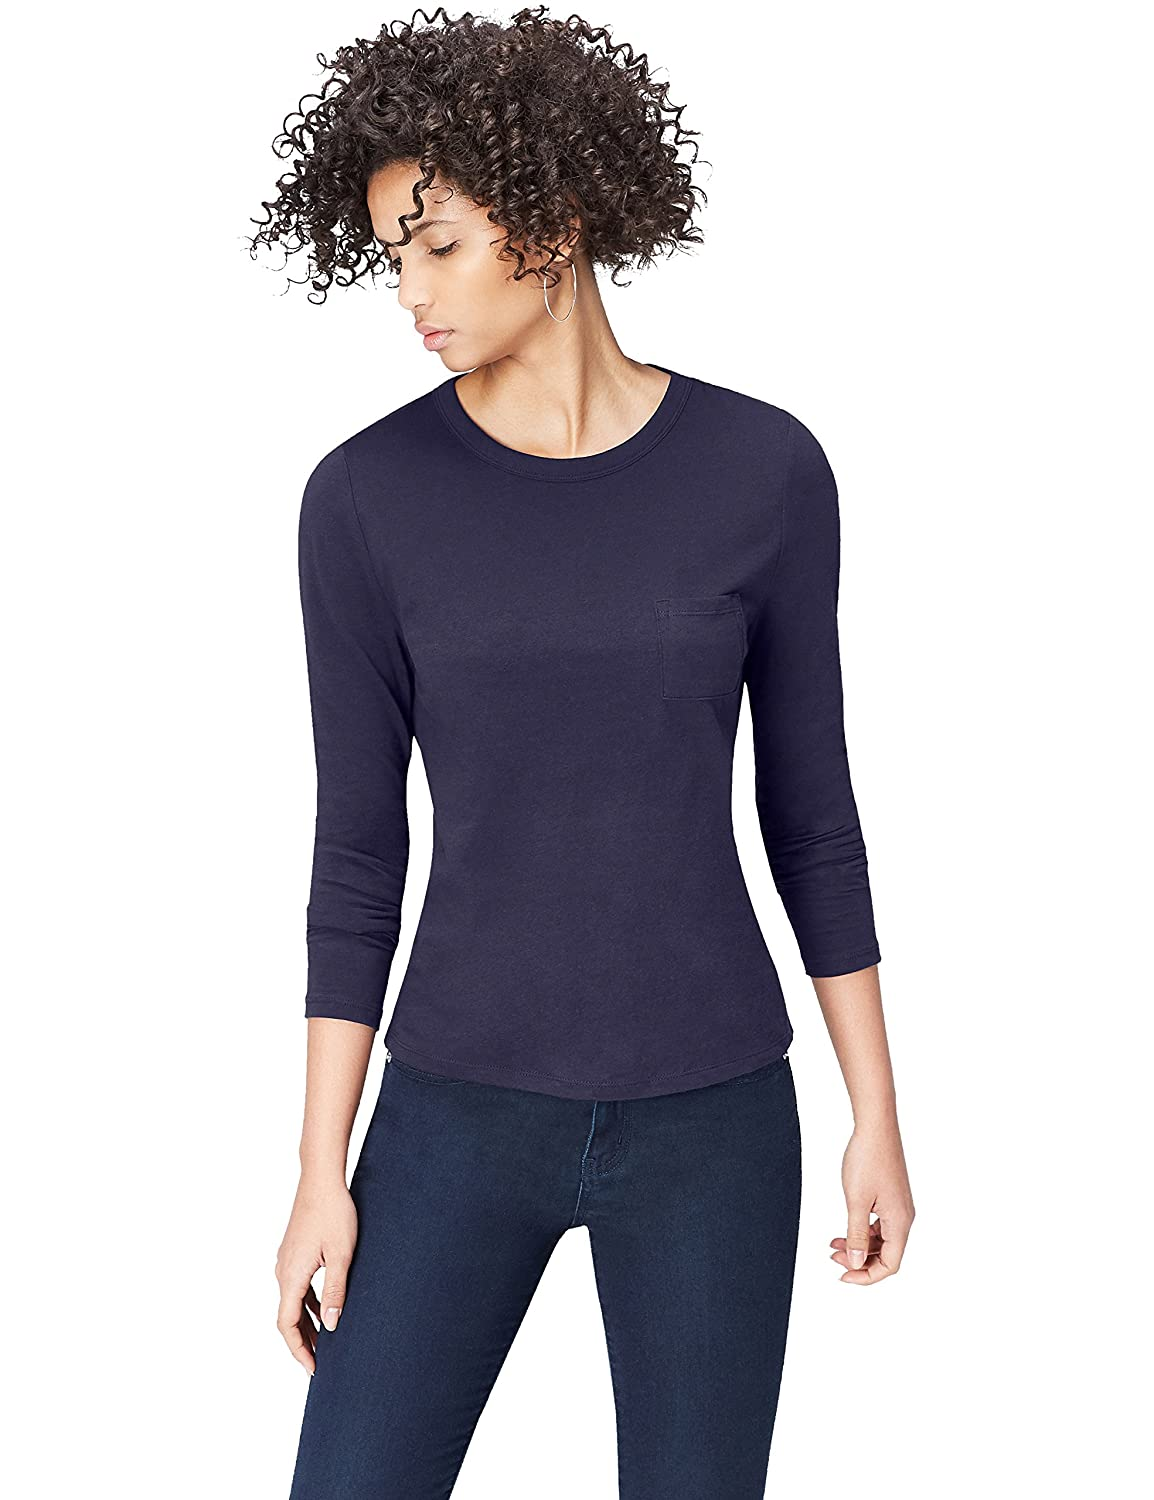 FIND Women's Long Sleeve Crew Neck T-Shirt 18110